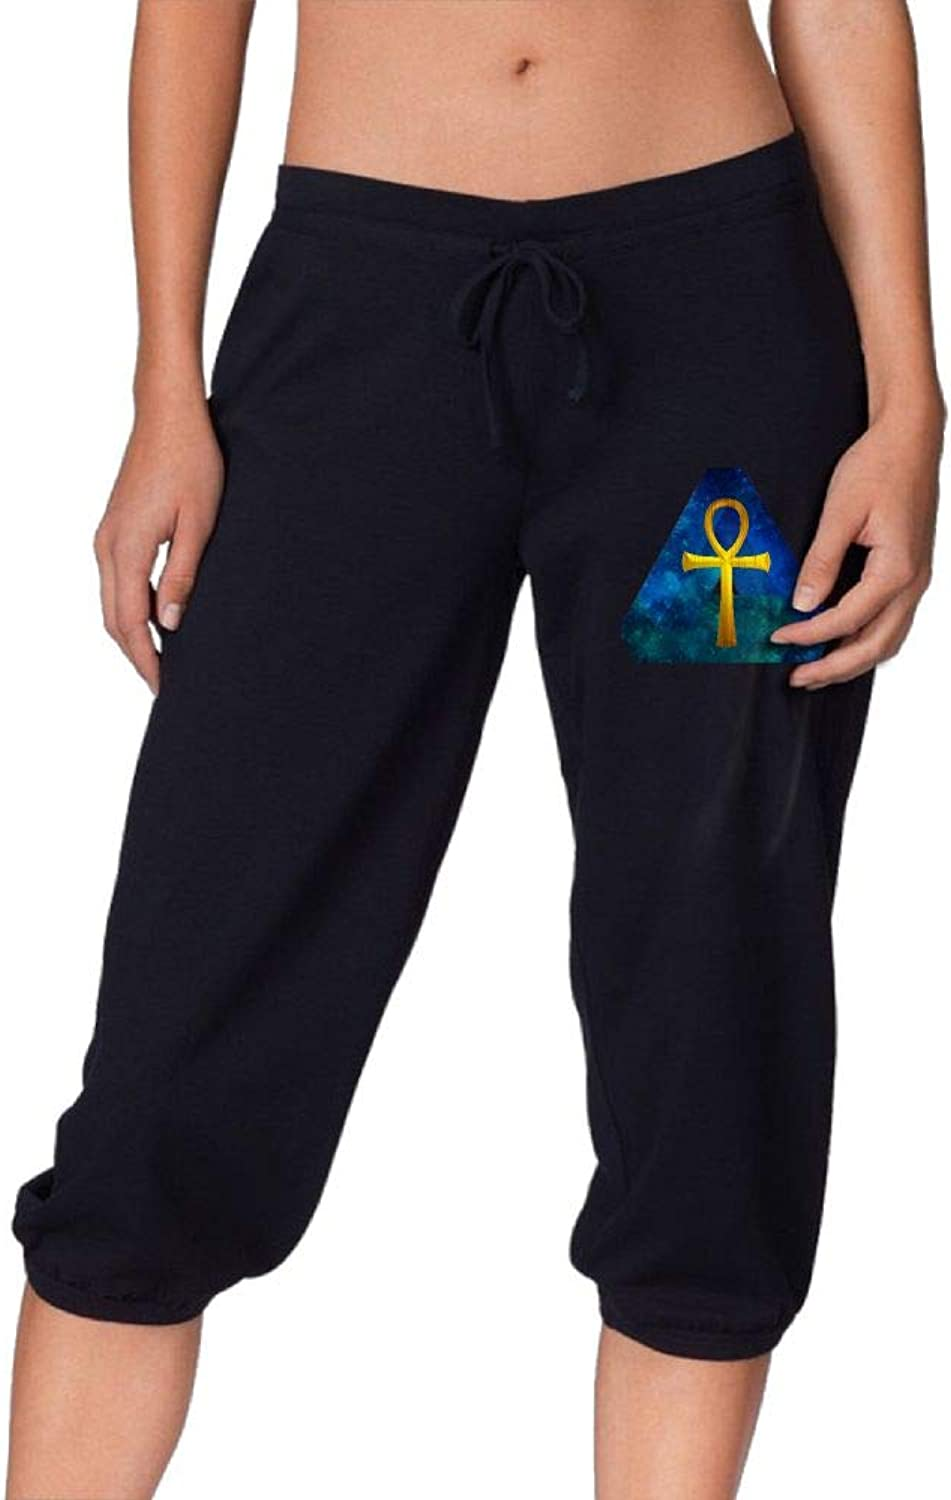 Pantsing Hipster Ankh Women's Fit Active French Terry Capri Pants